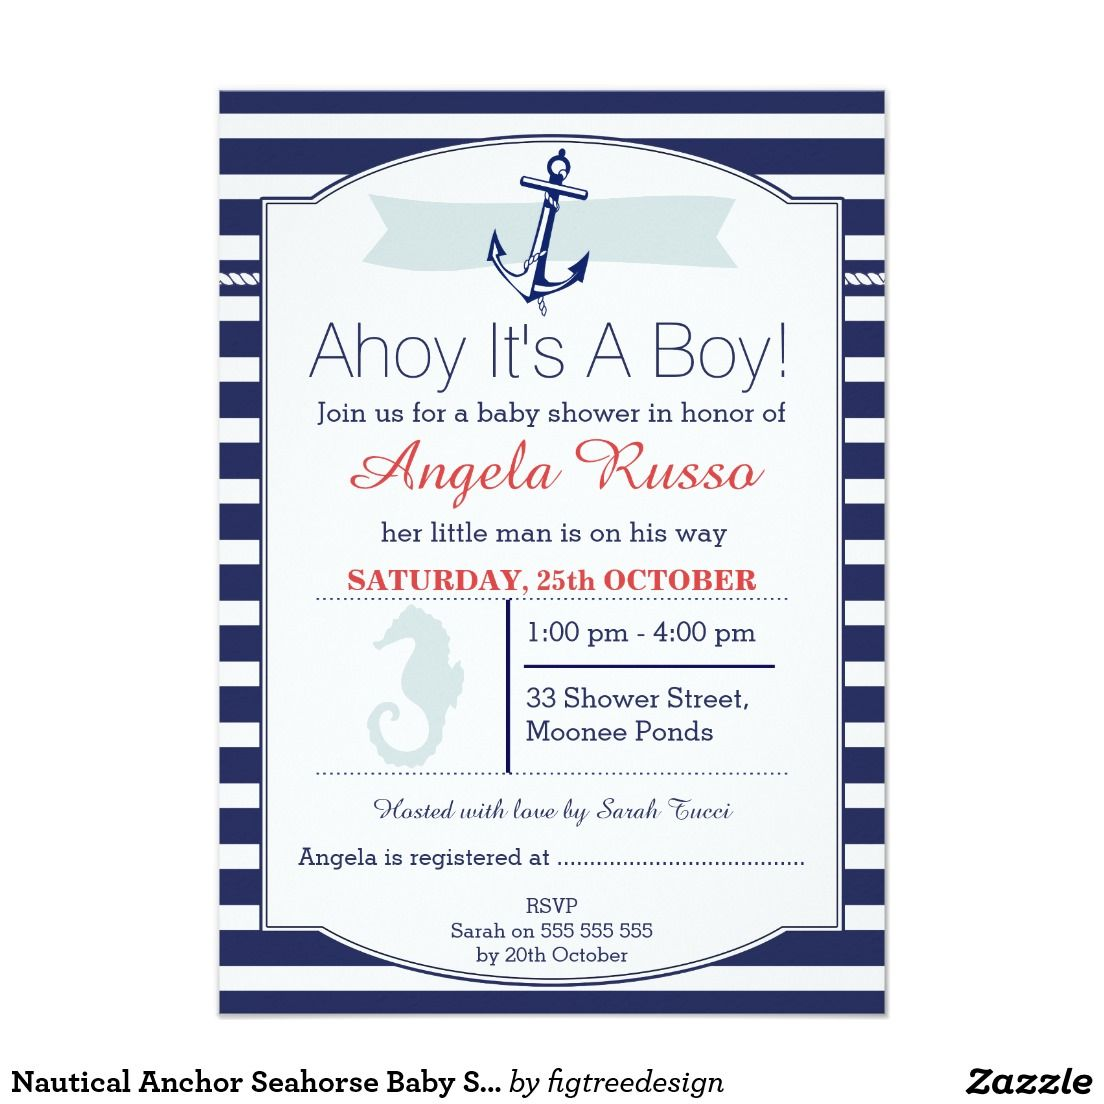 Nautical Anchor Seahorse Baby Shower Invitation Pinterest